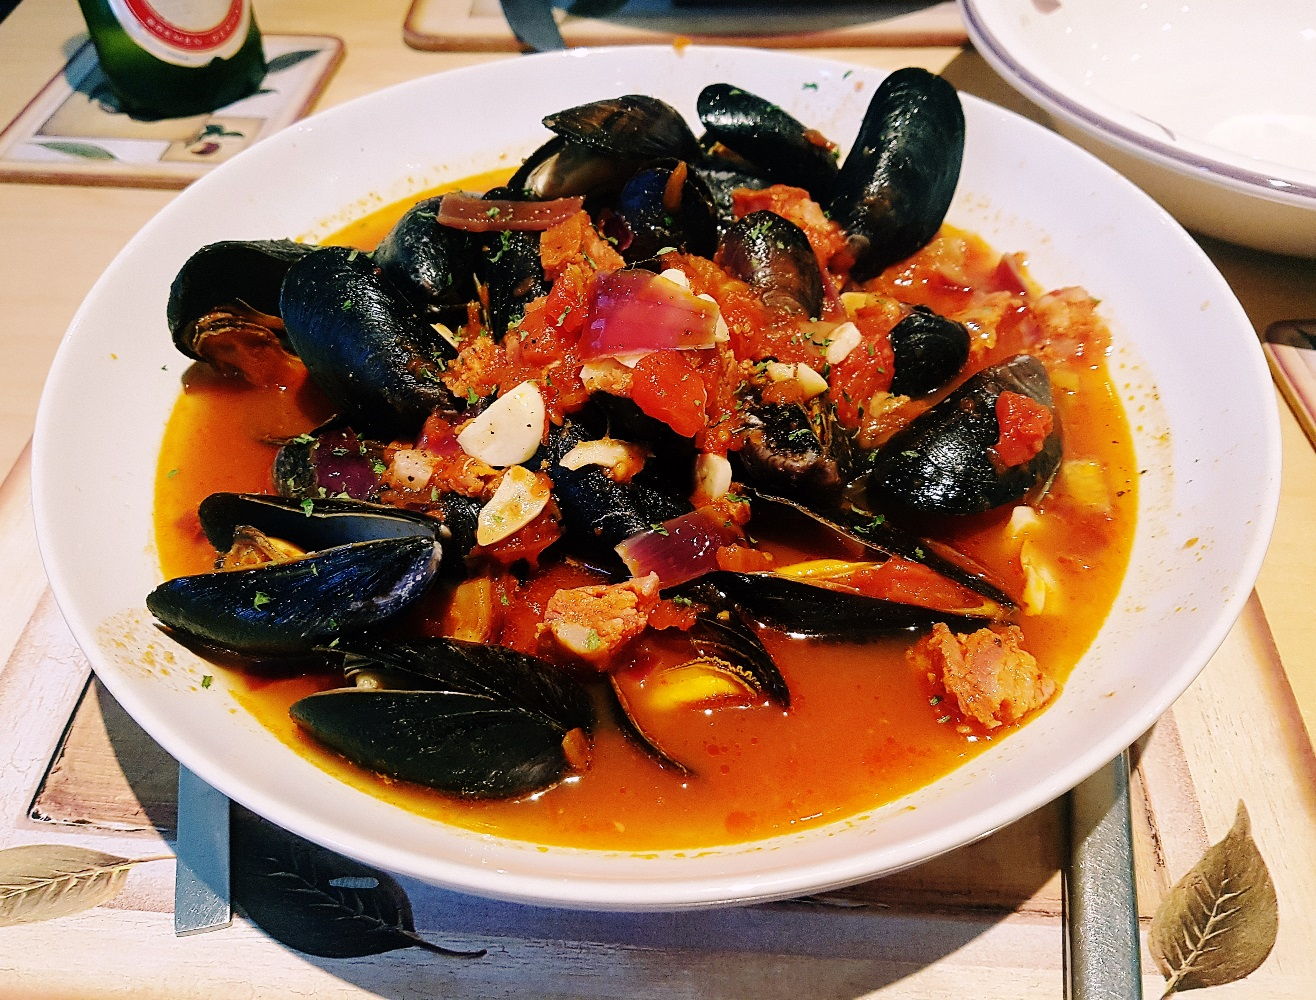 Chorizo and mussel bouillabaisse, made with produce from Kirkgate Market in Leeds